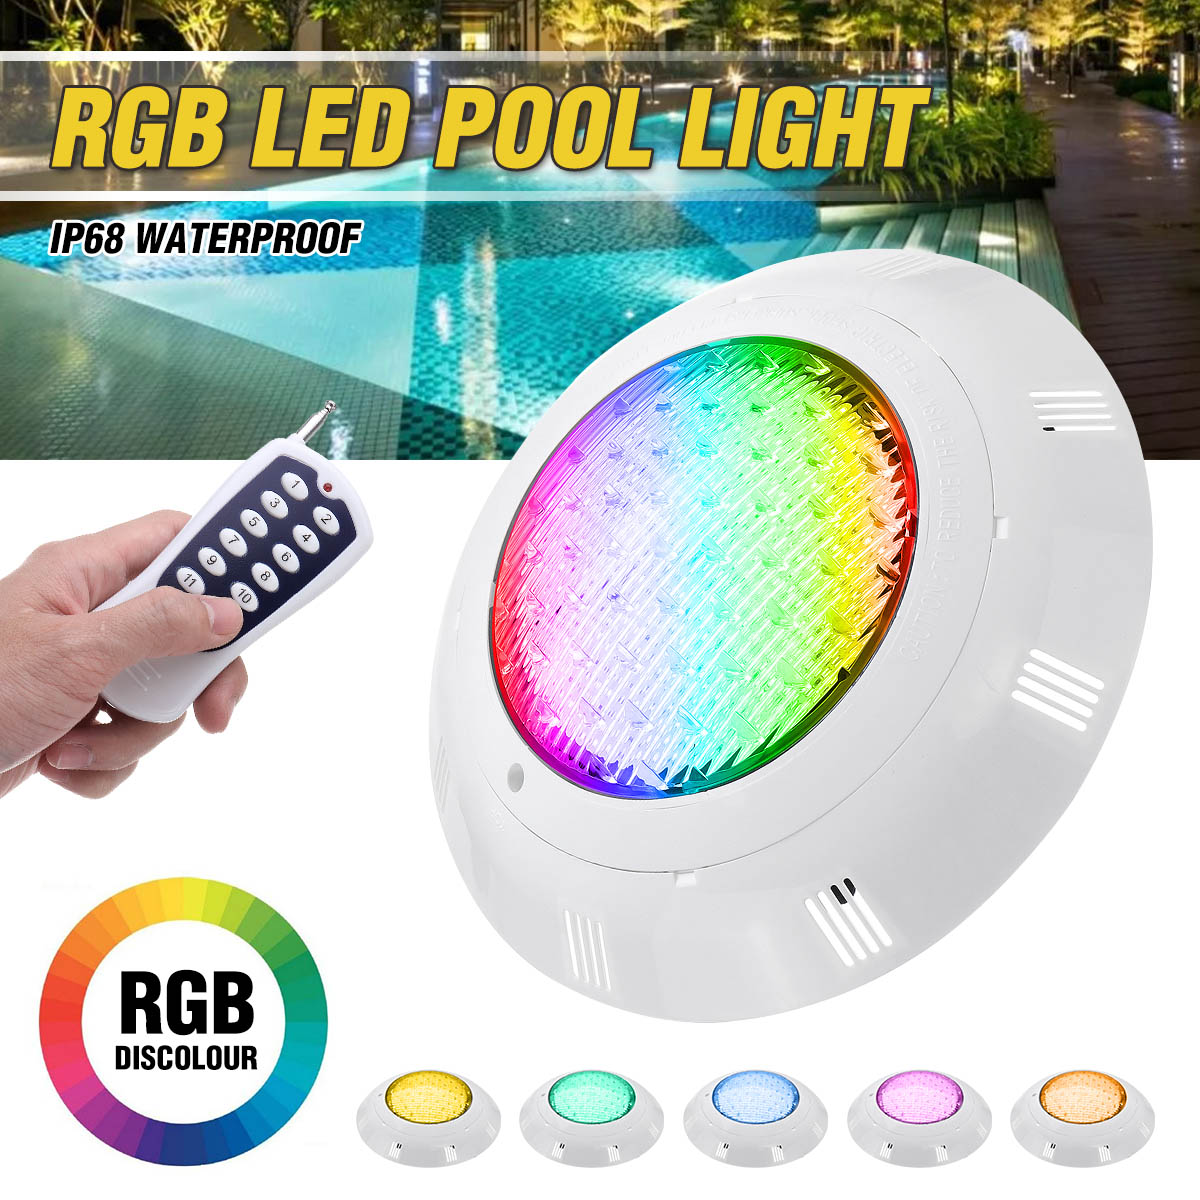 Super Bright 45W 450LED RGB Swimming Pool LED Light With Remote Control IP68 Waterproof Pond Lights Underwater Lamp